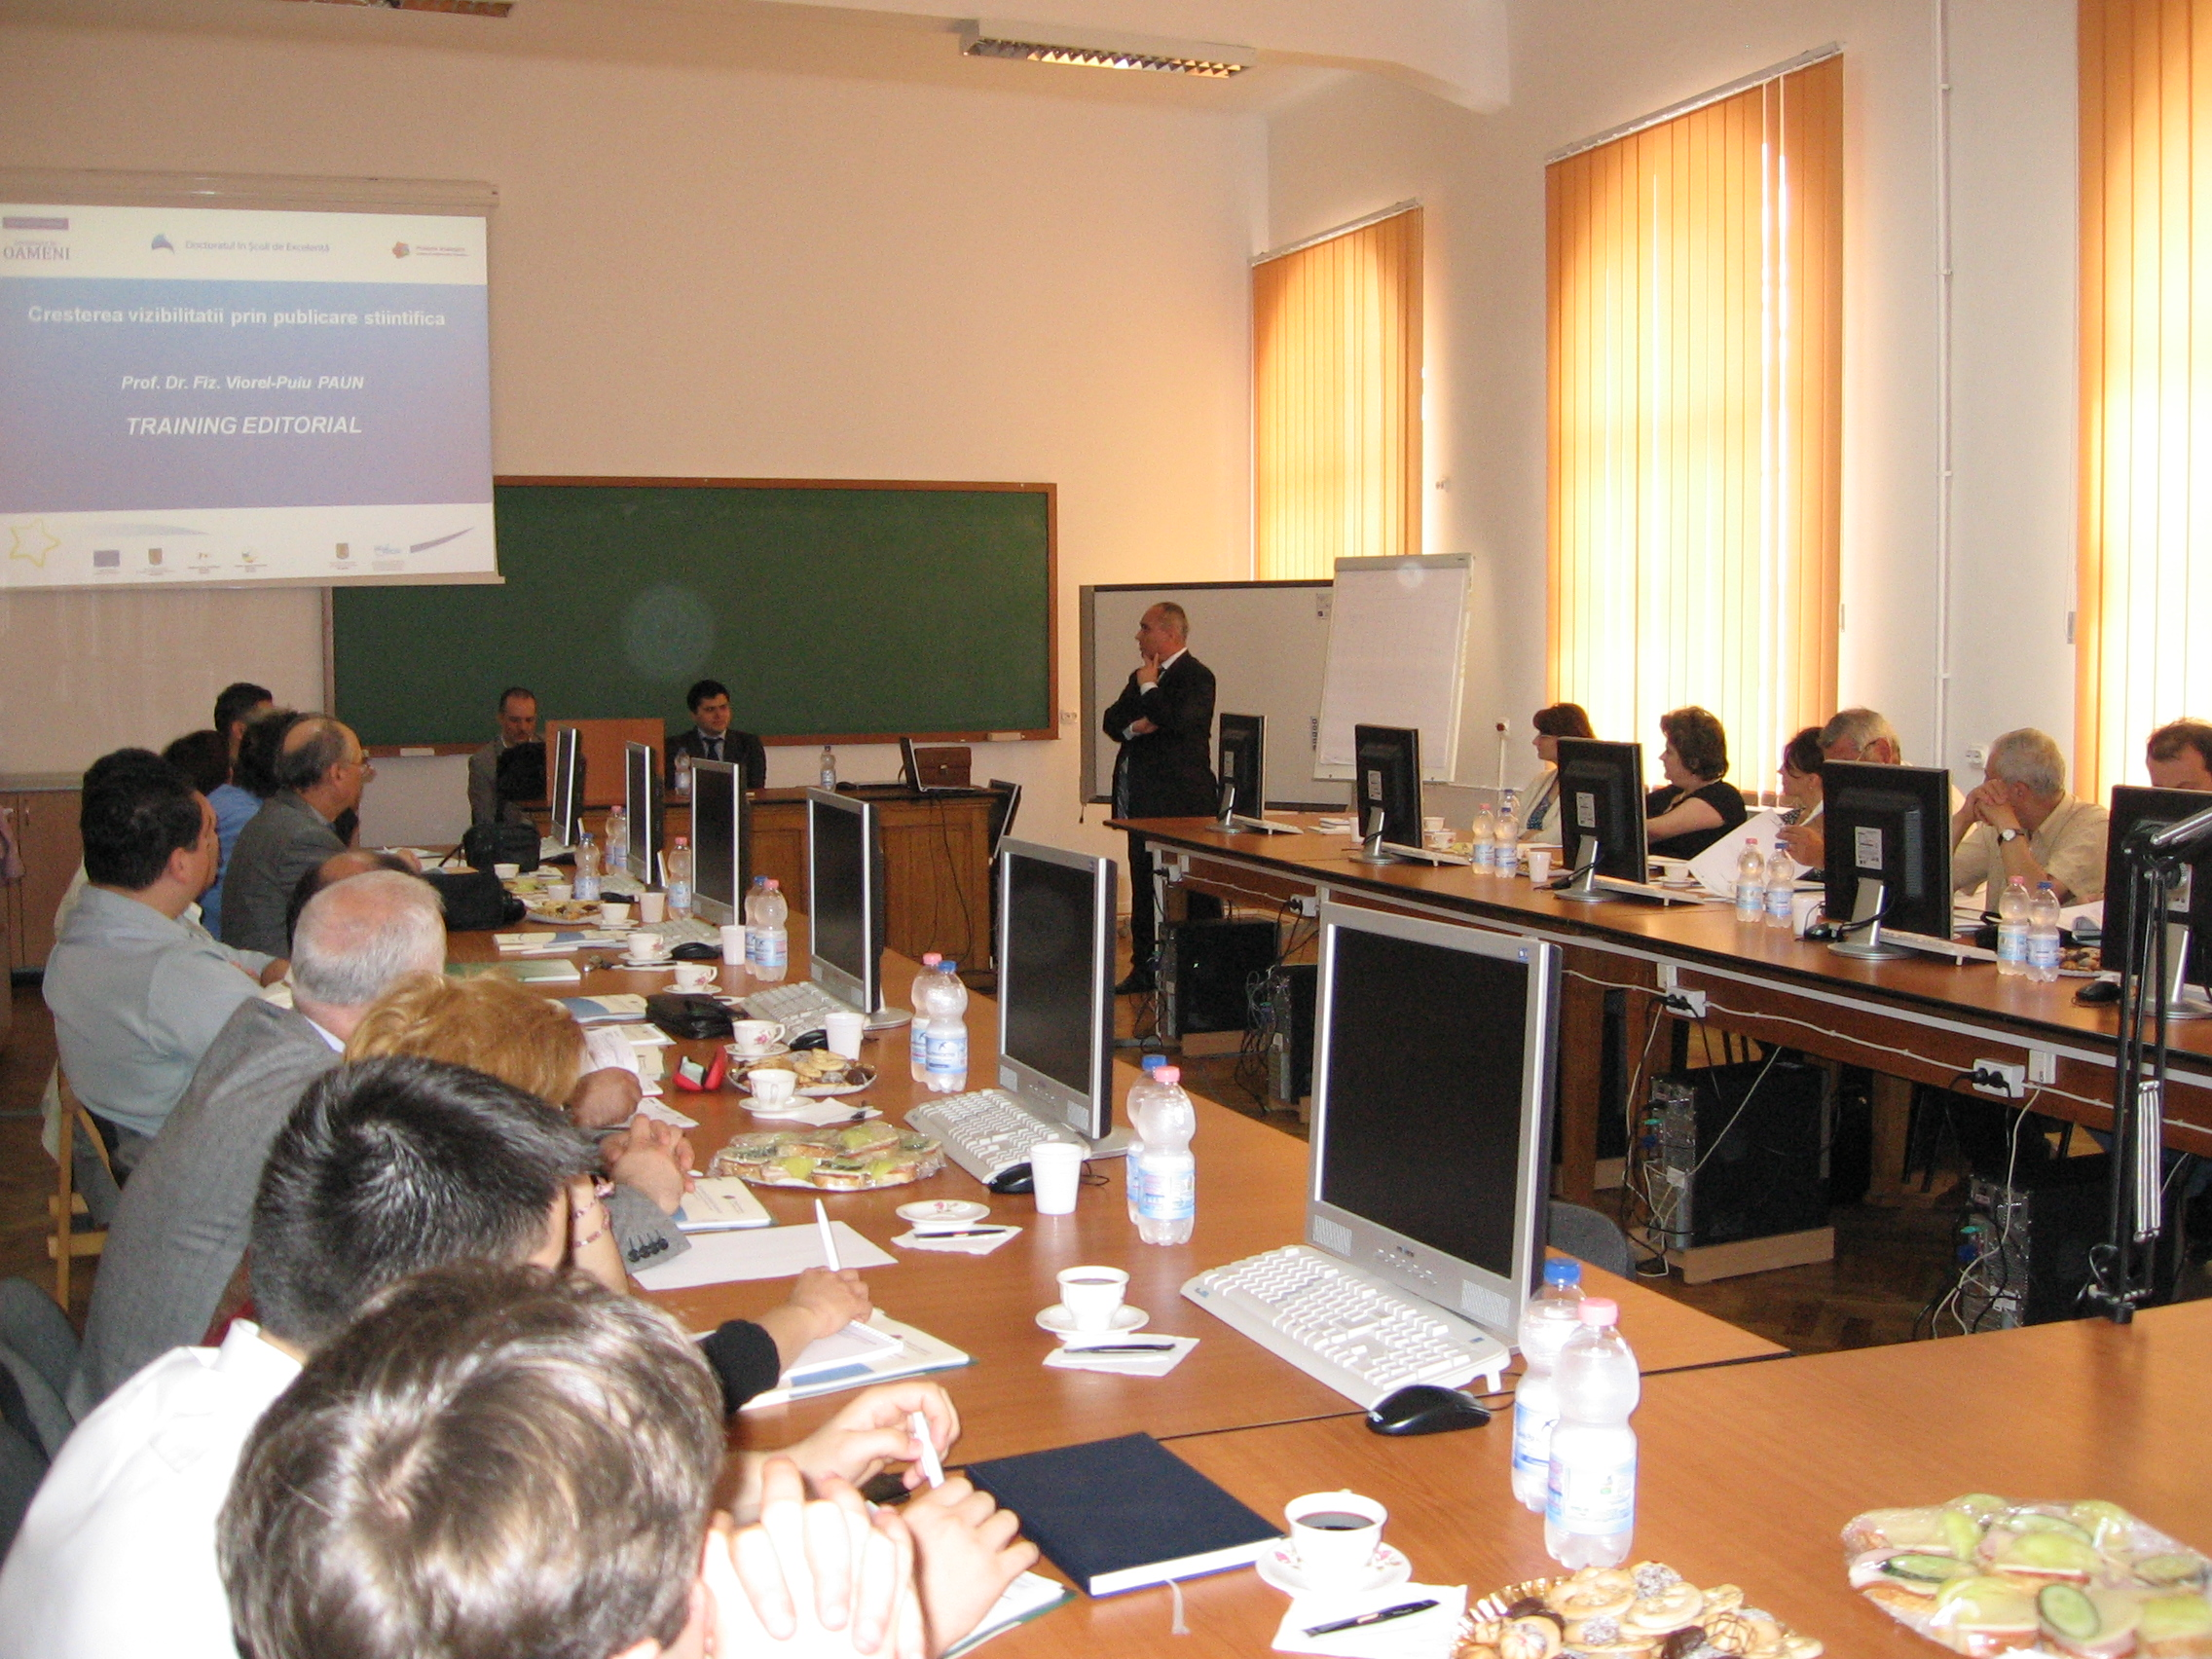 Training editorial 5, Iasi